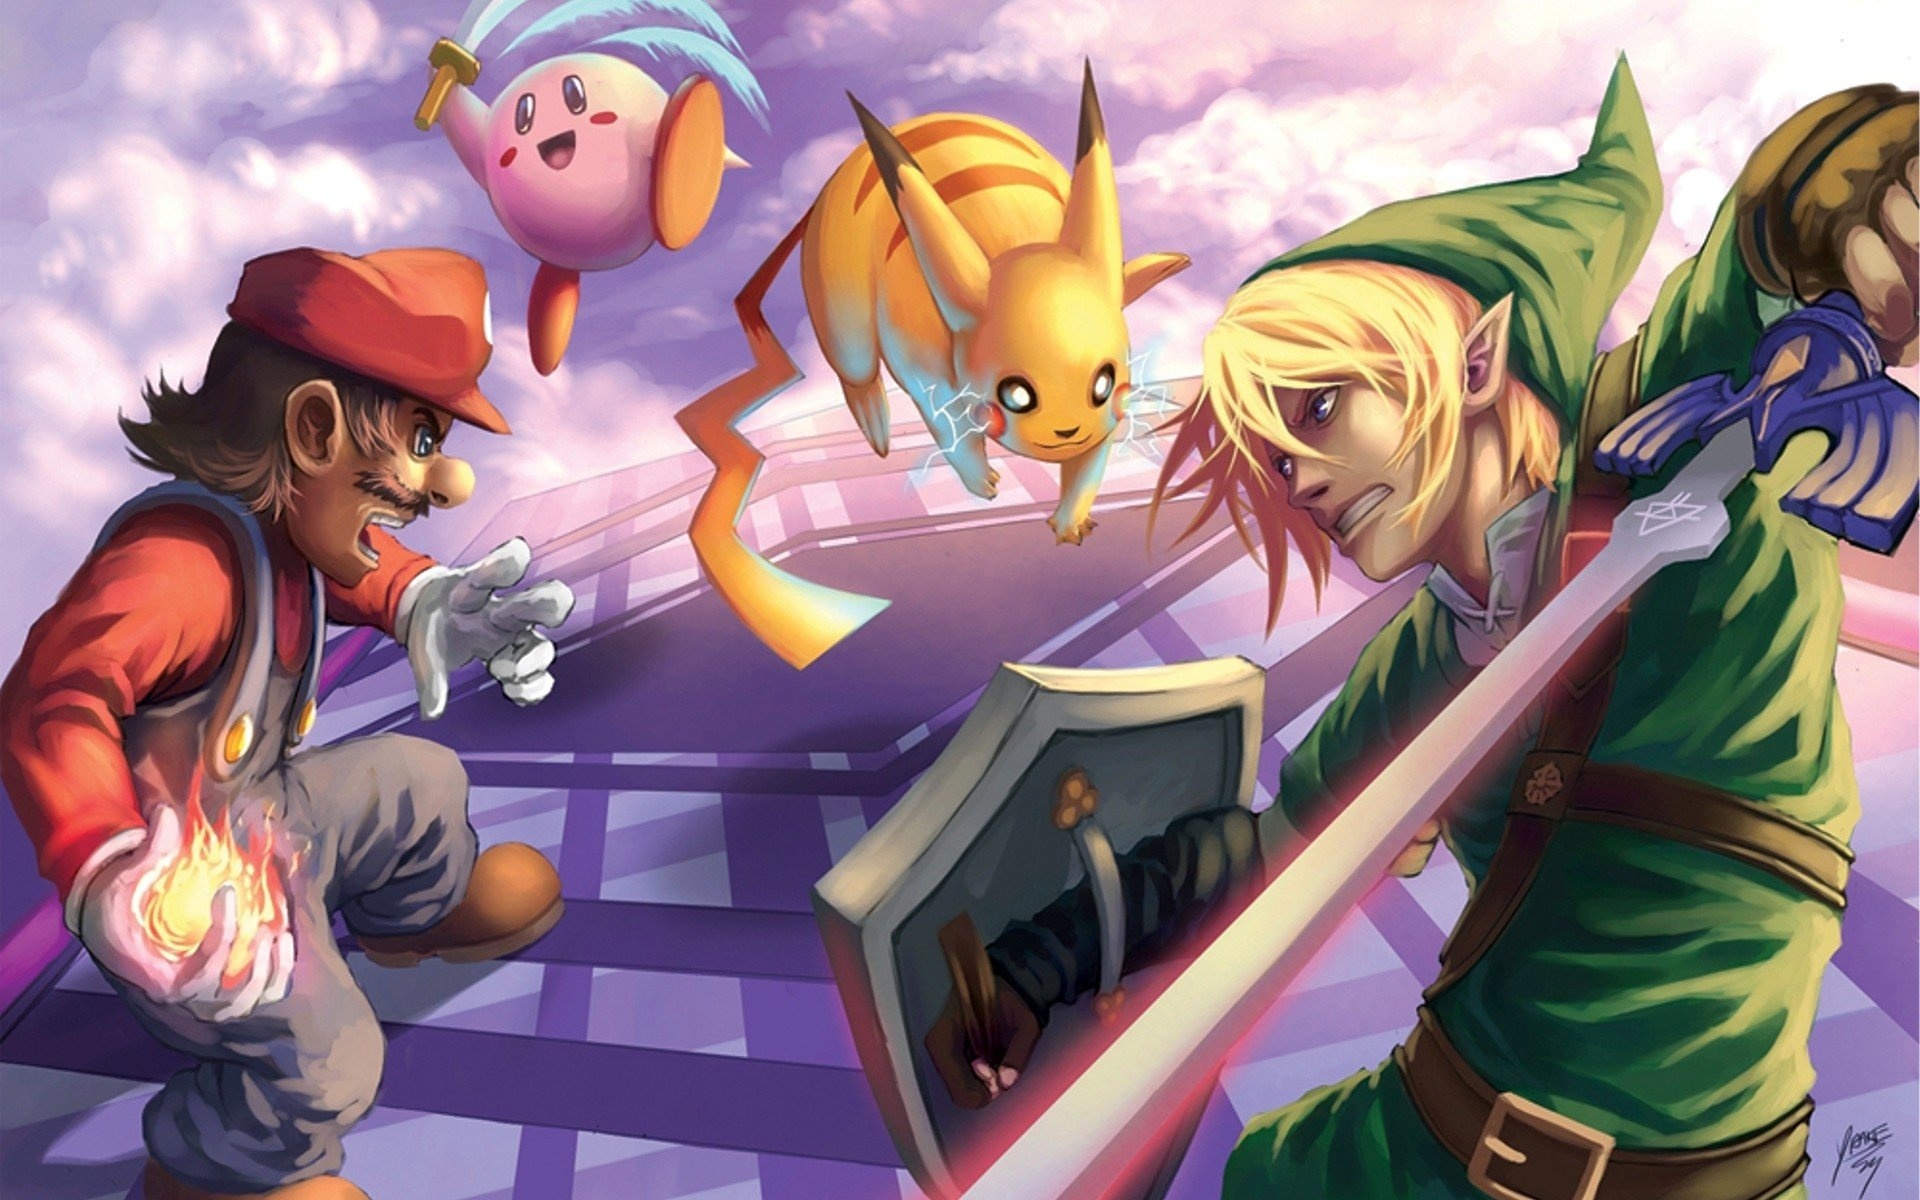 Super Smash Bros Wallpapers 1920x1200 Desktop Backgrounds